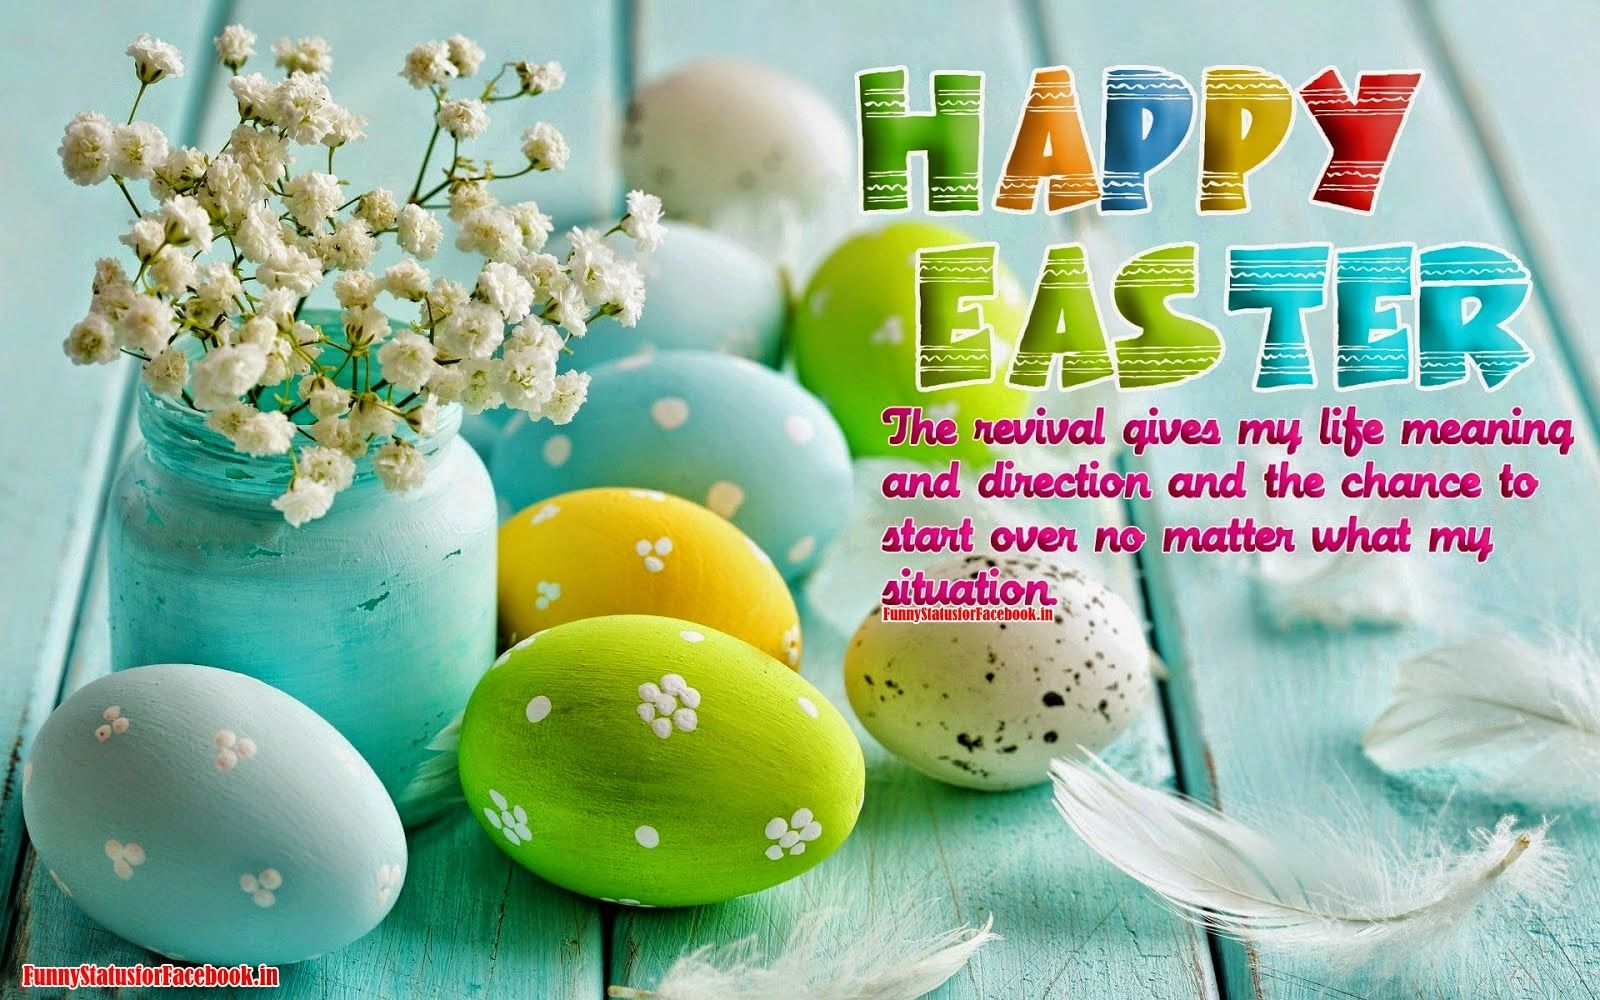 Happy easter wishes messages google search collection happy easter wishes messages google search kristyandbryce Choice Image